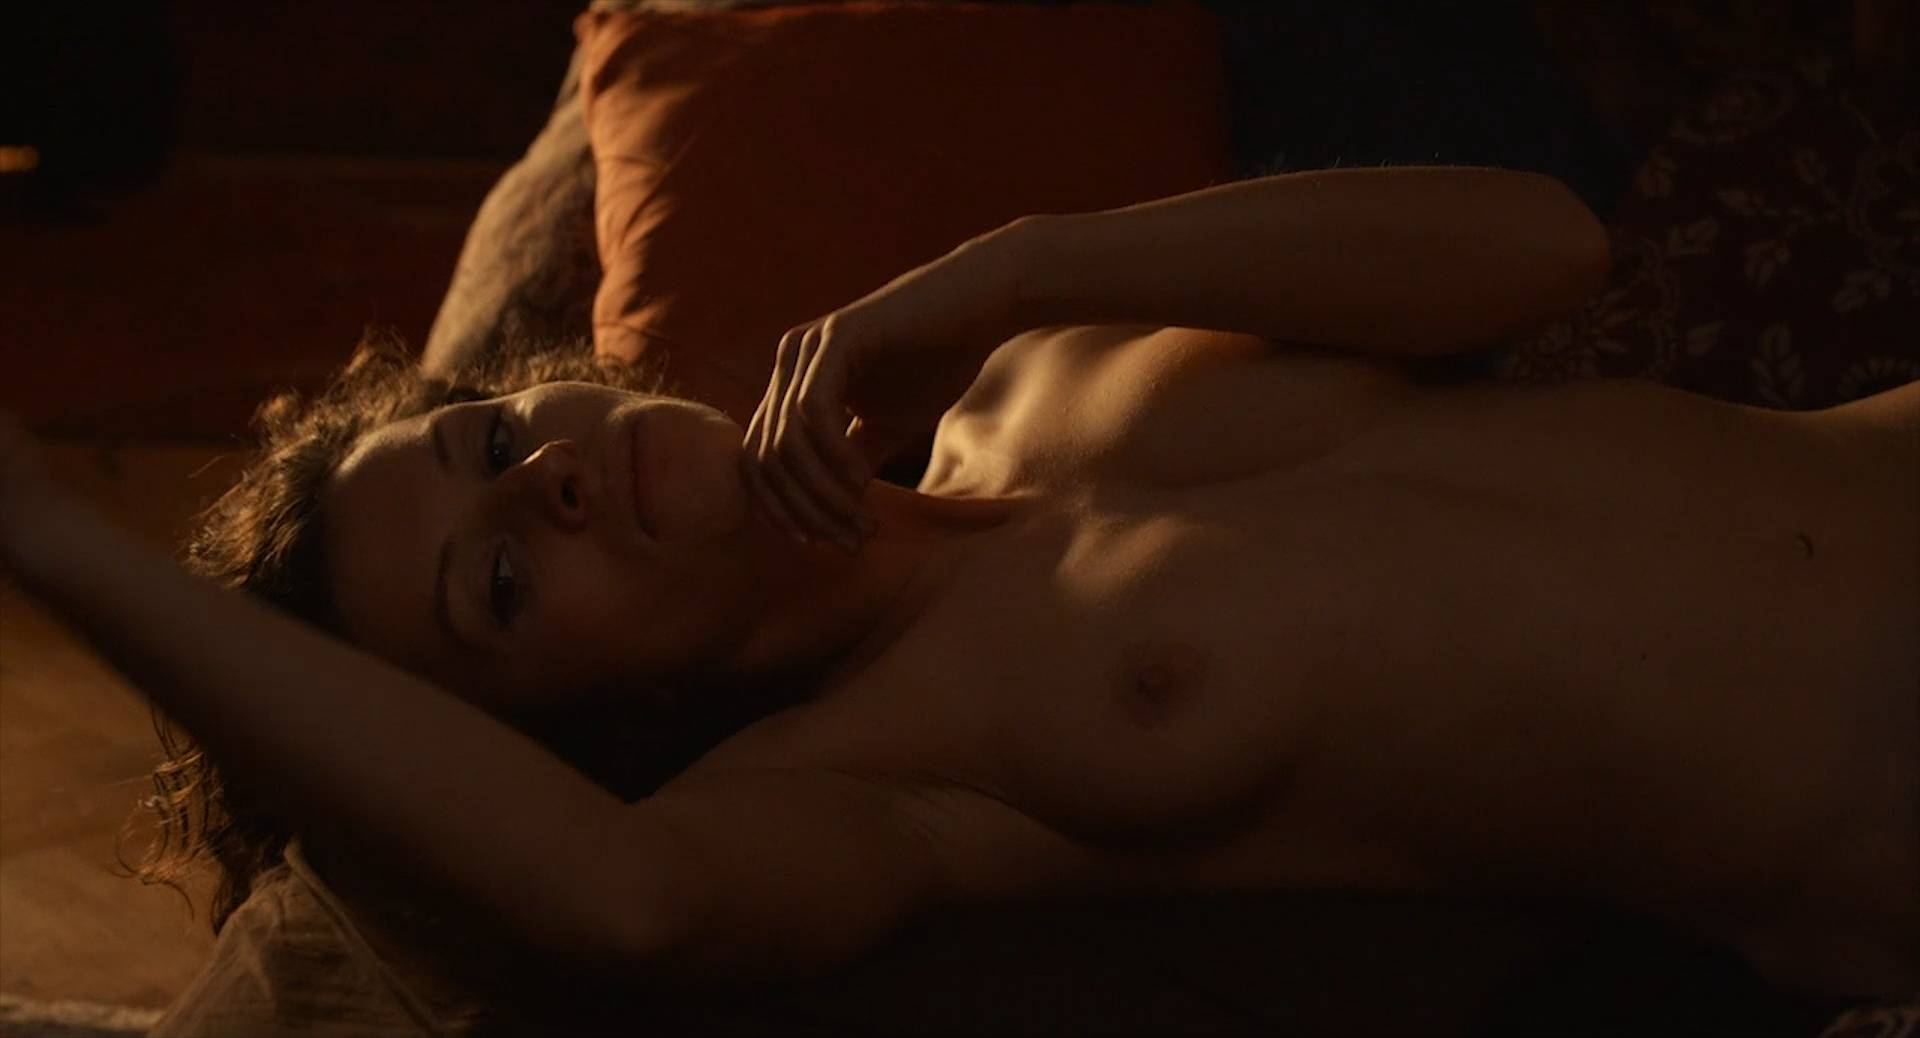 Marie Málková nude full frontal sex and others nude - Fotograf (CZ-2015) Web-DL hd1080p (15)